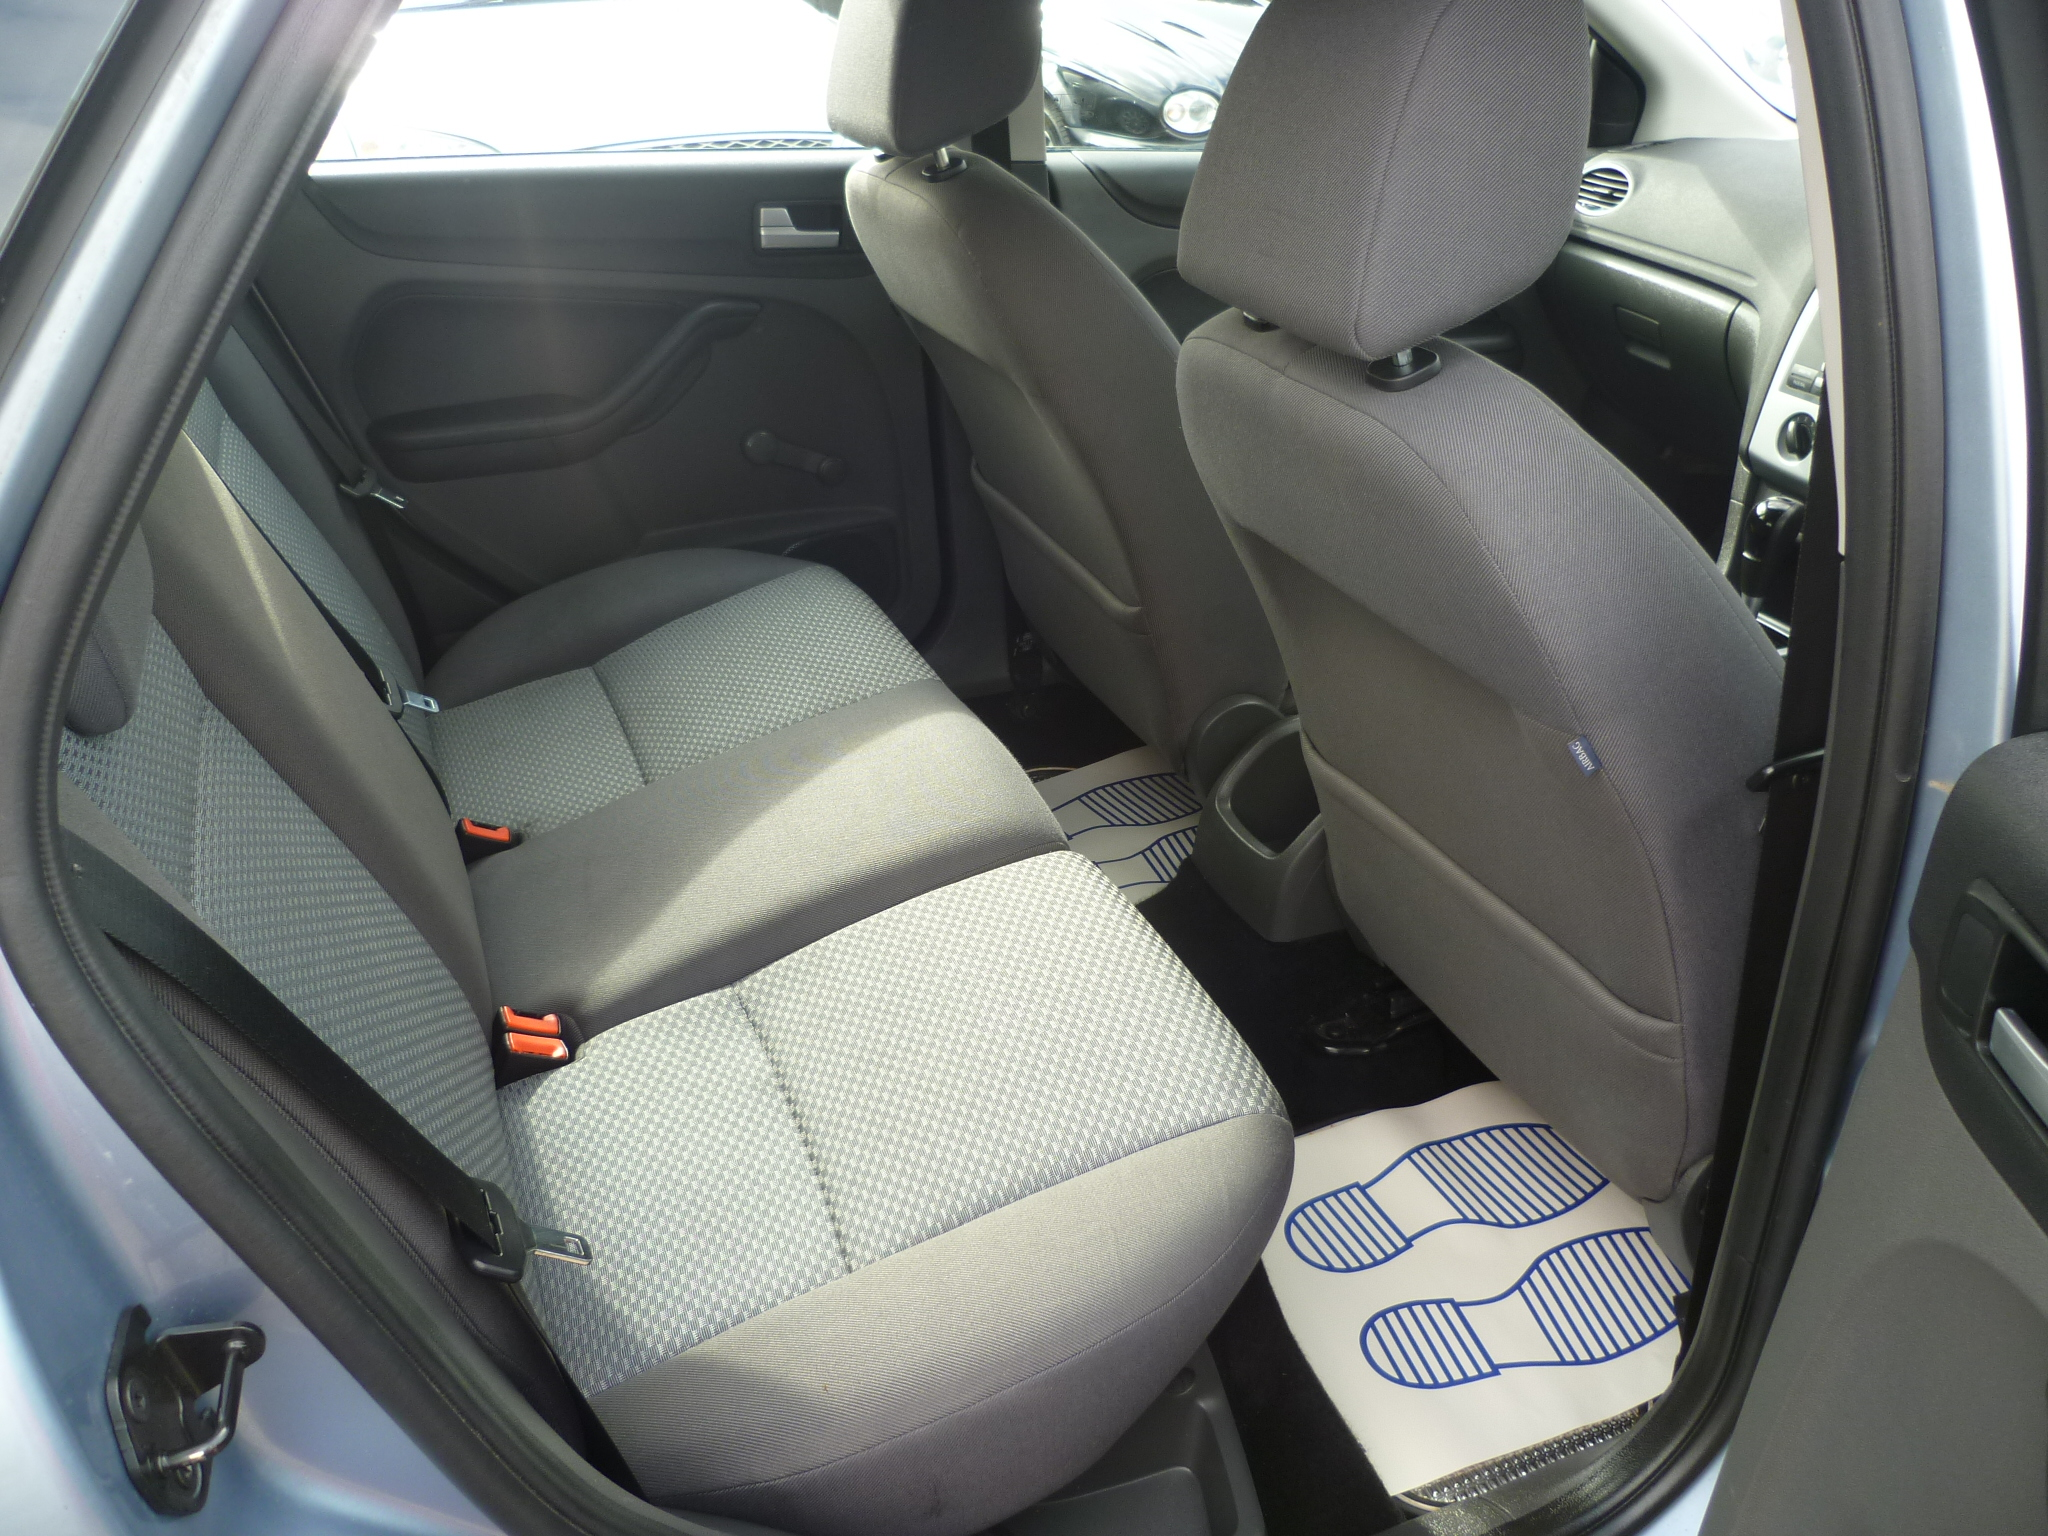 Ford Focus 1.6 LX Automatic 009